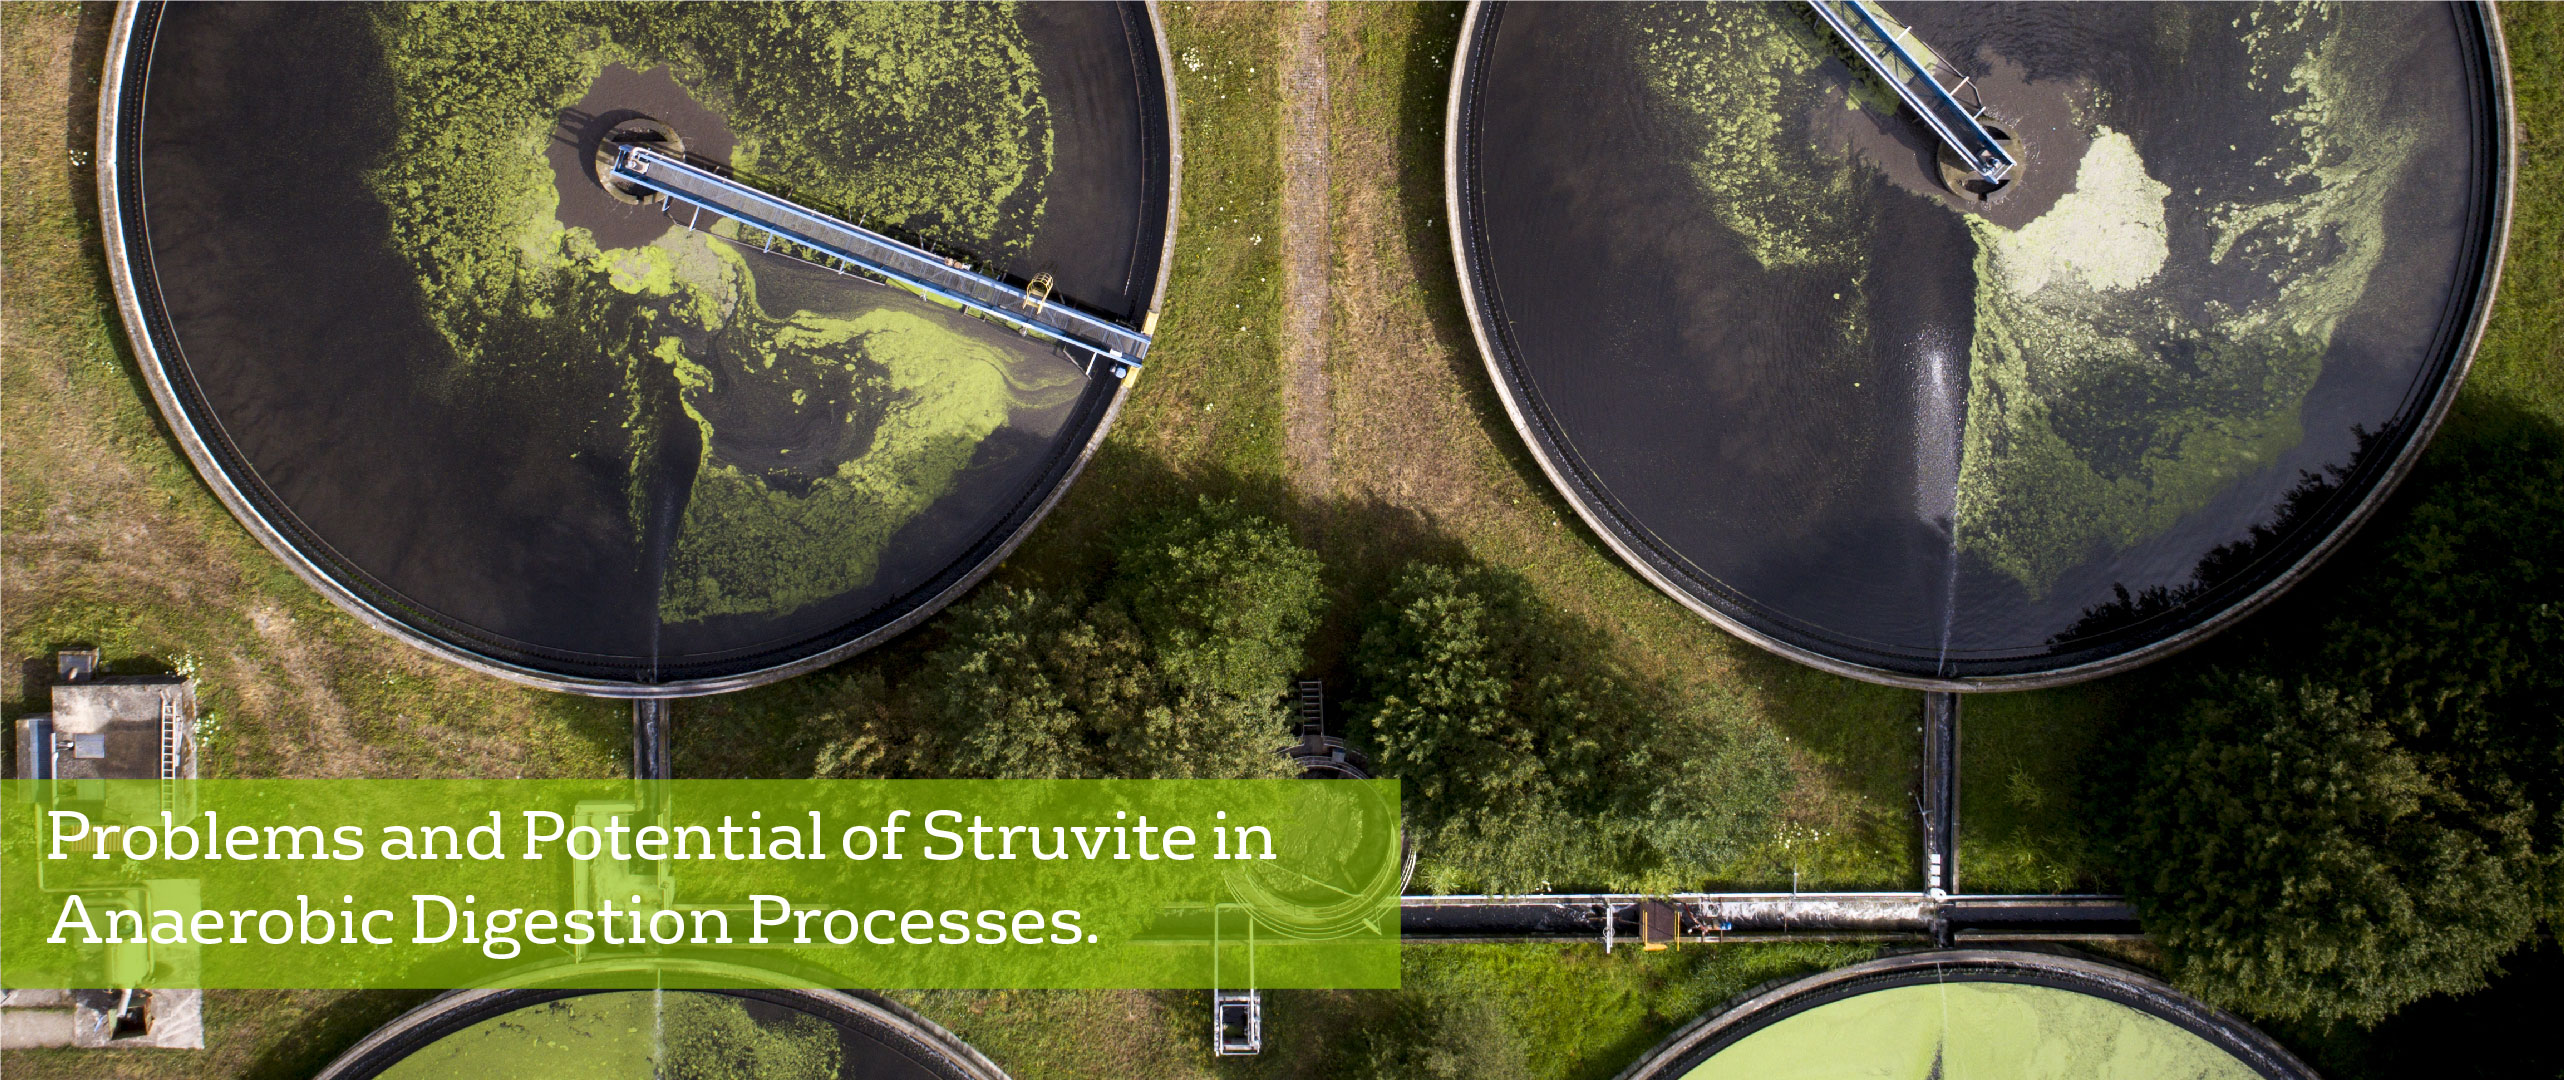 Problems and Potential of Struvite in Anaerobic Digestion Processes